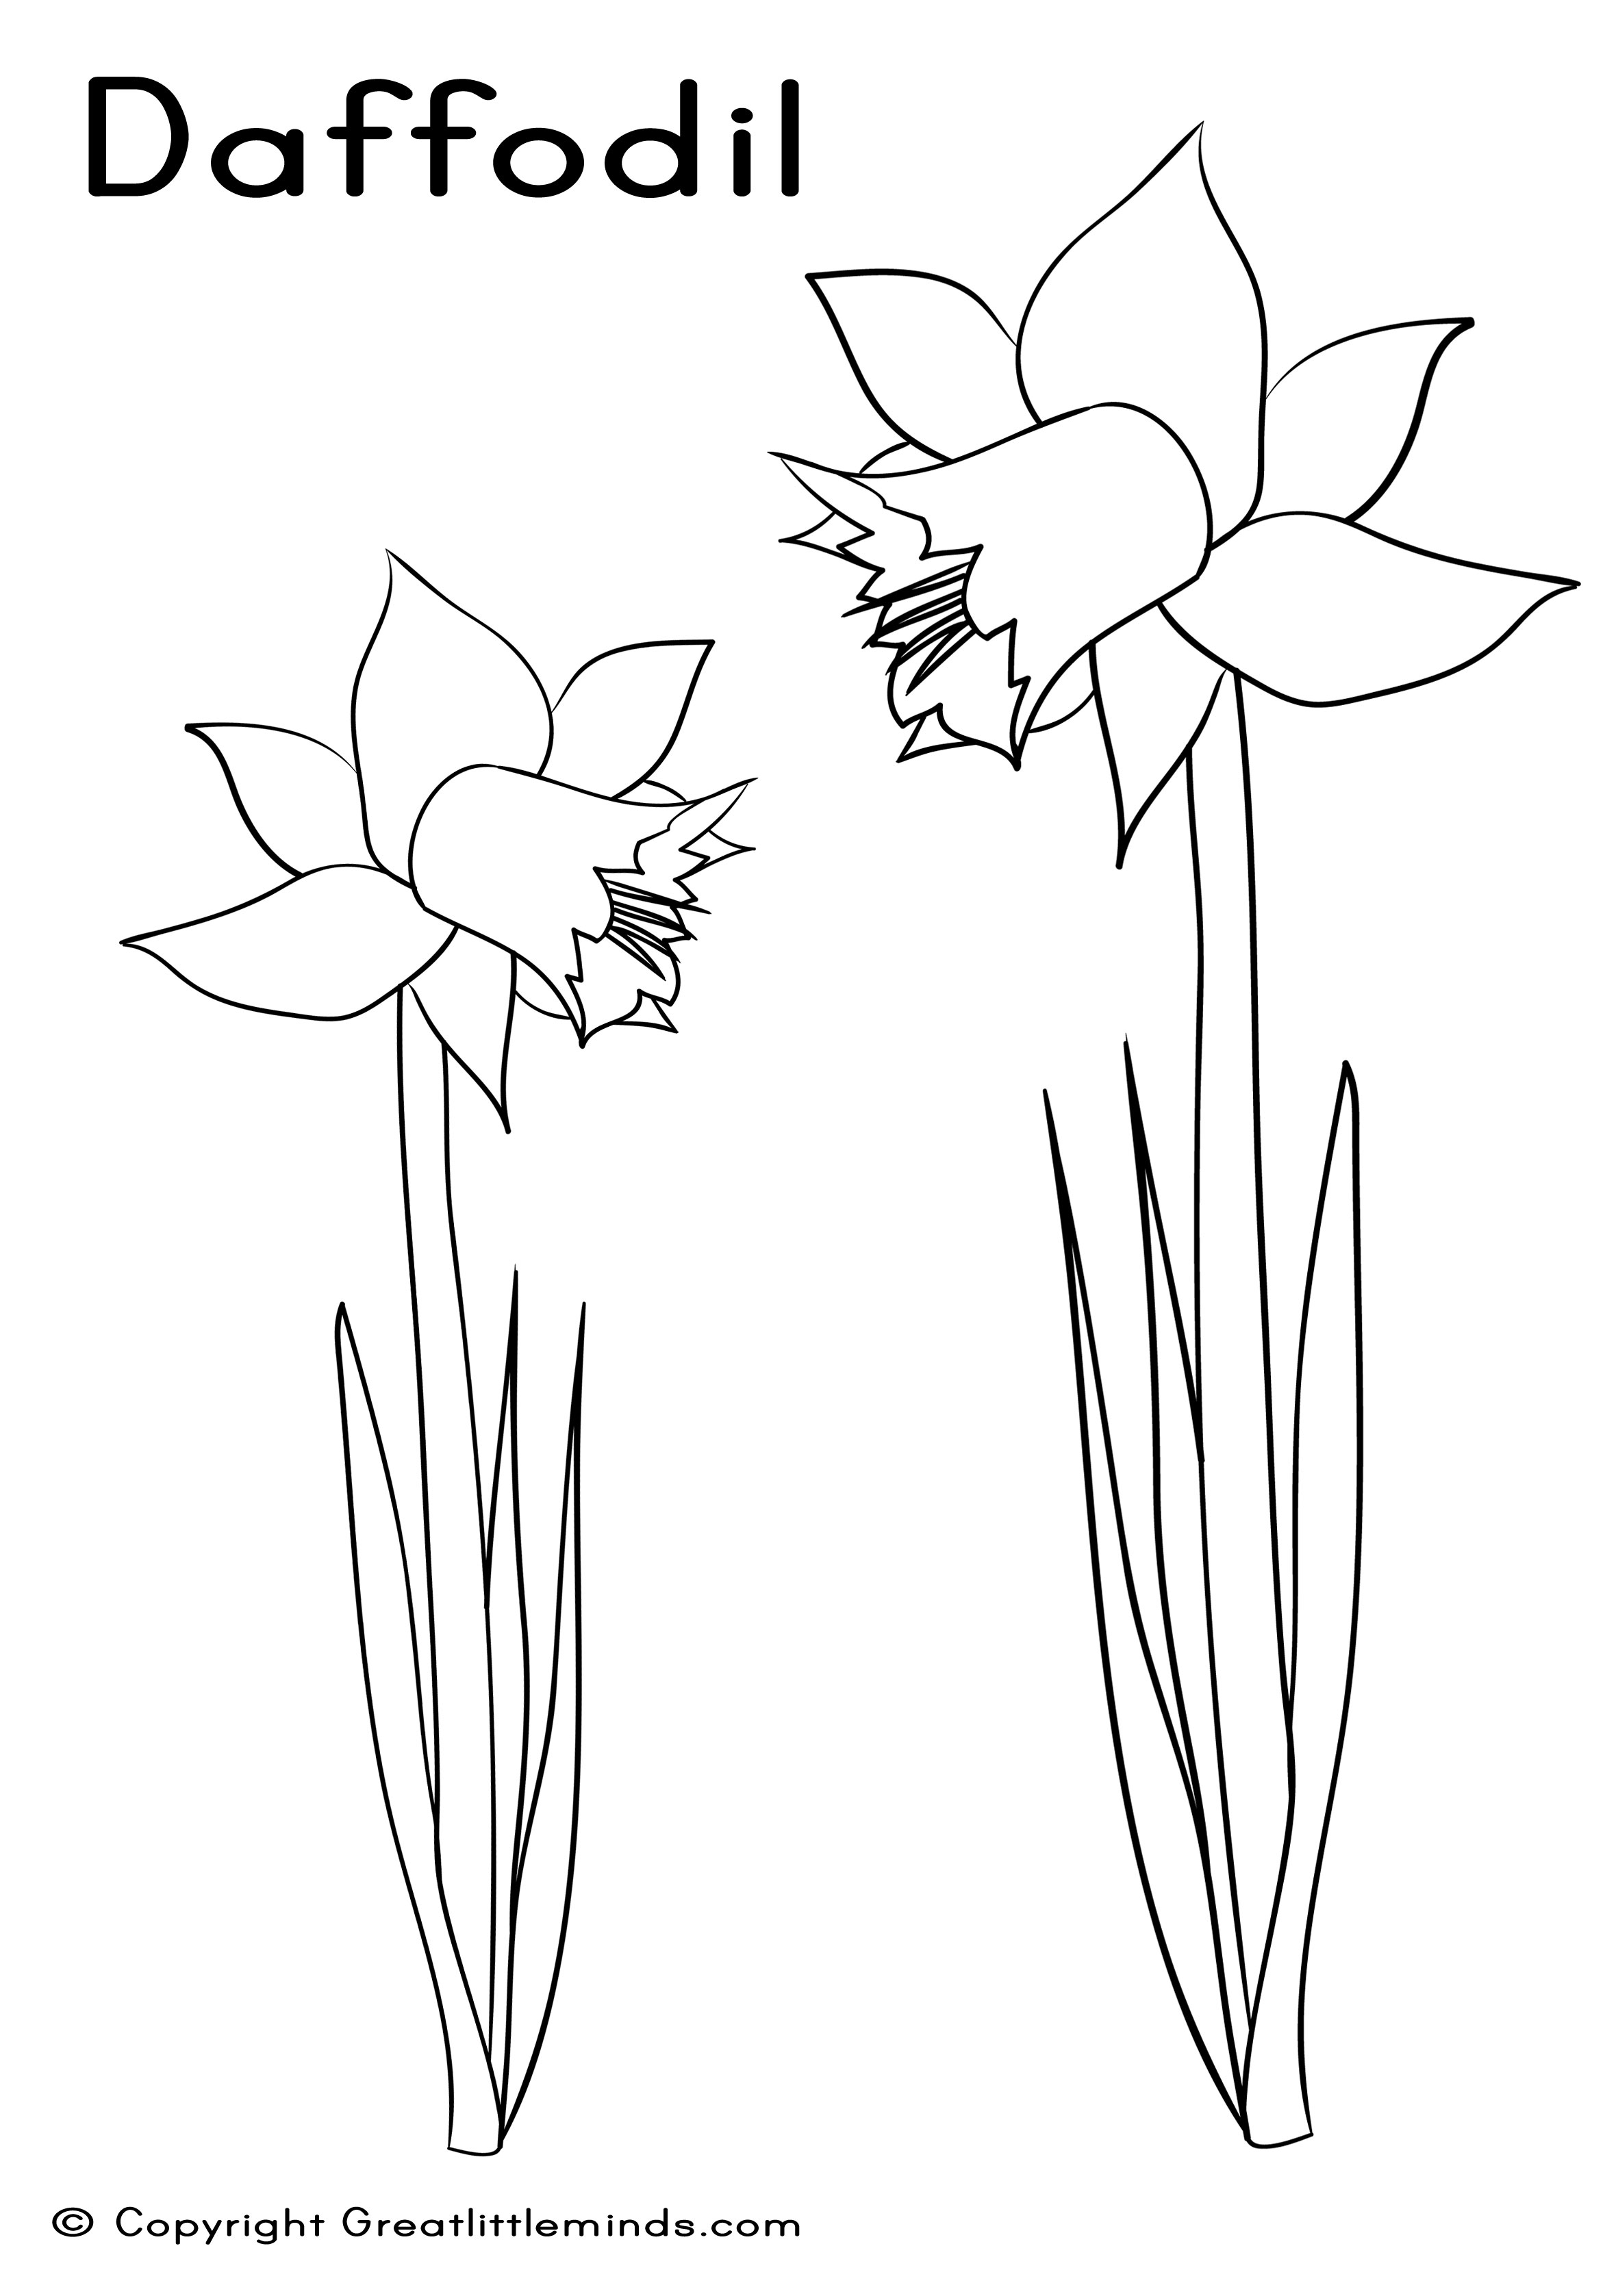 Daffodils Coloring Pages to Print 5p - Free Download